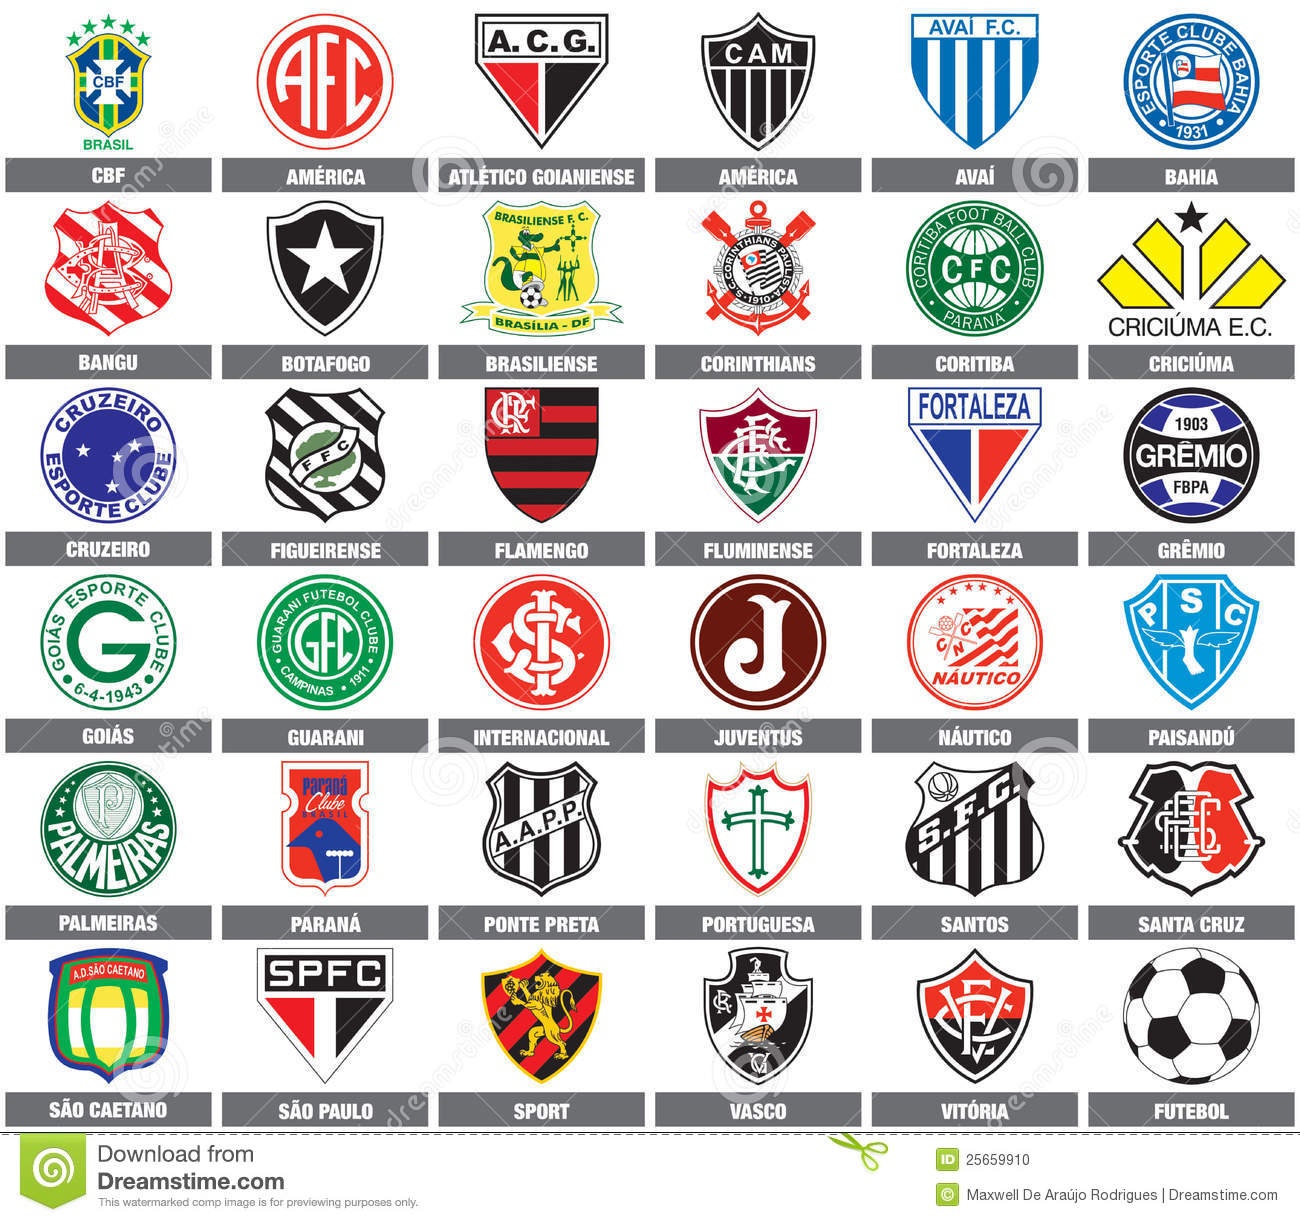 Quipes de football br siliennes image ditorial illustration du paulo passion 25659910 - Logo club foot bresil ...